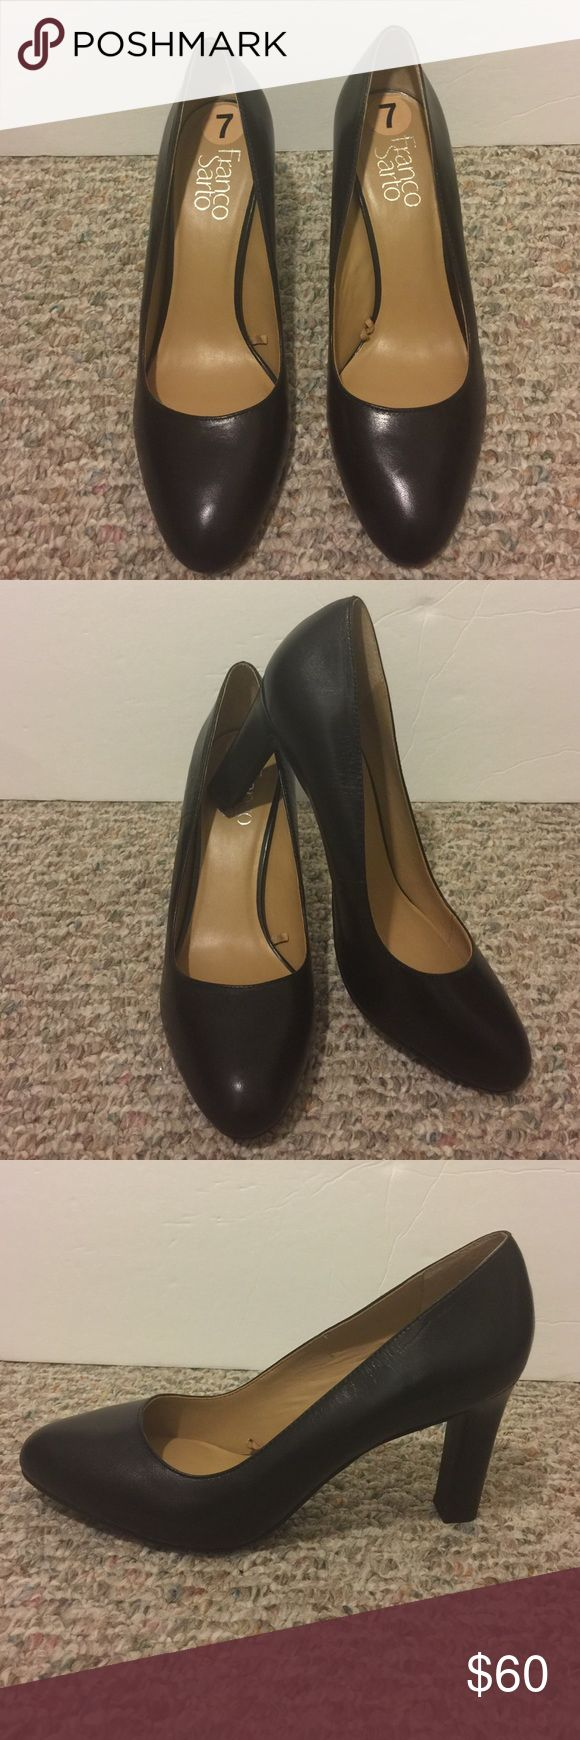 "NWOT Franco Sarto Black Pumps Sz 7 NEW Franco Sarto Black Pumps Heels  Sz 7❣️ New without box❣️Heels 3.5"" Franco Sarto Shoes Heels"